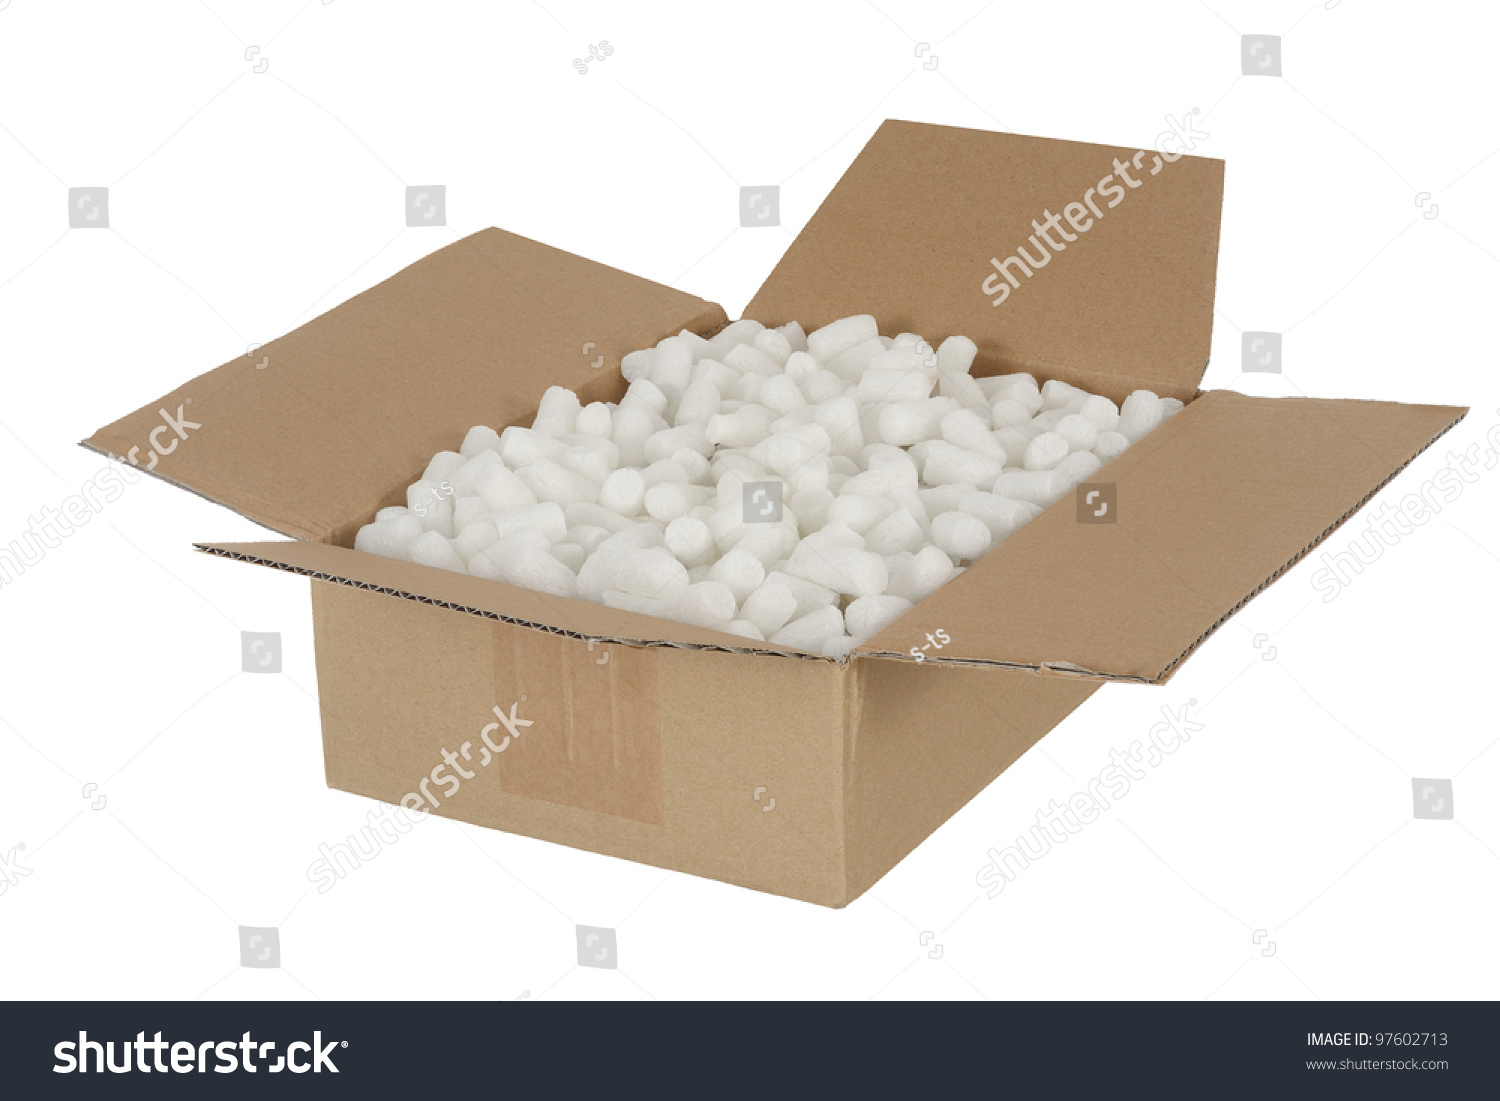 Opened Cardboard Box Parcel With Loose Fill Stock Photo ...